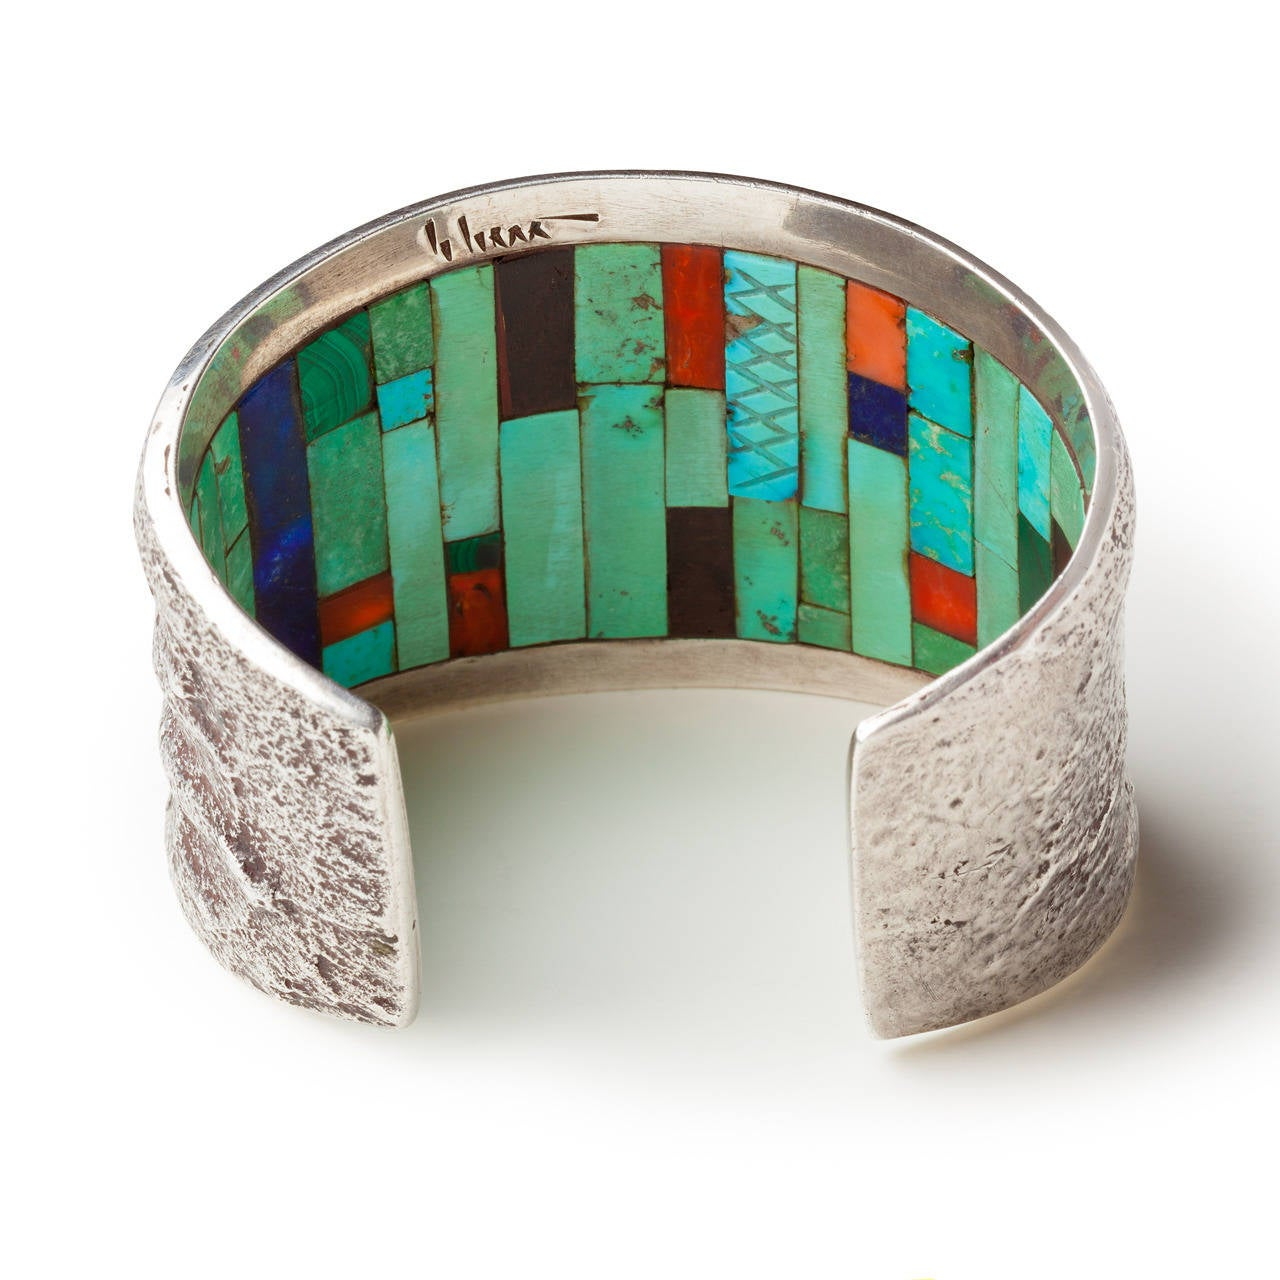 charles loloma jewelry charles loloma tufa cast cuff with inlay circa 1970 for 6249